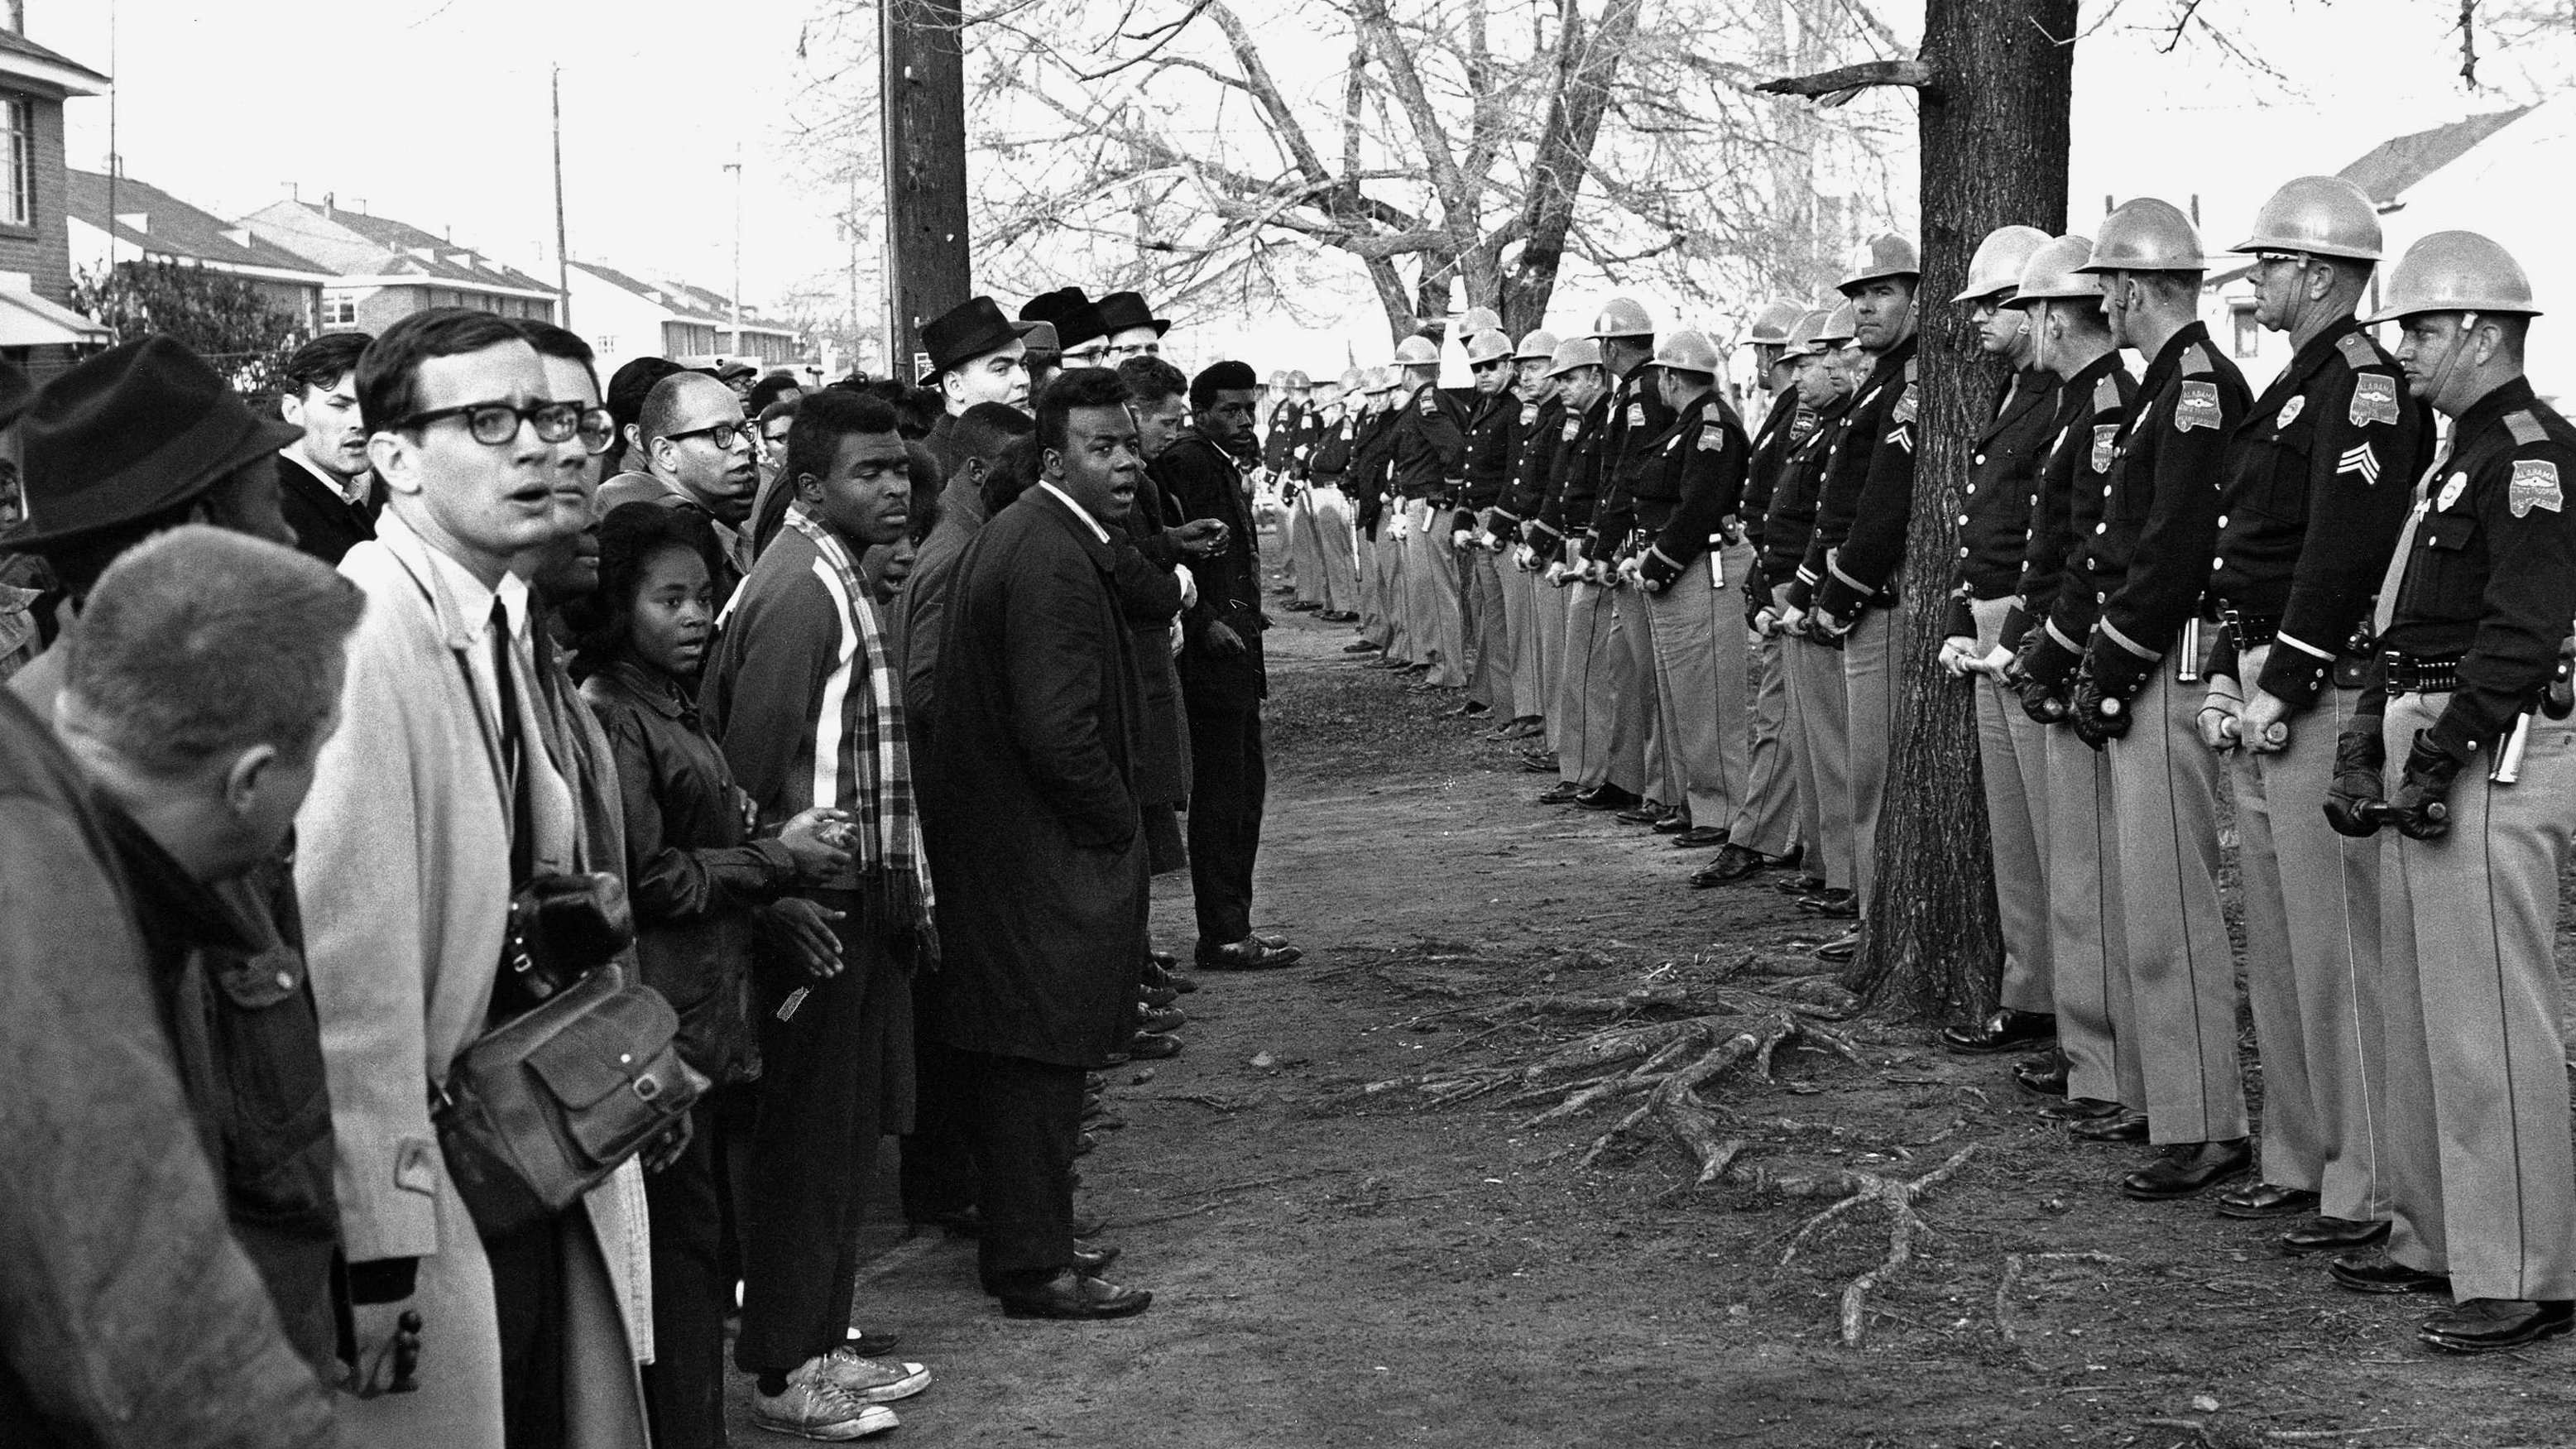 A policemen hold back demonstrators, who started off in all directions, in an attempt to march to the court house, March 13, 1965, Selma, Ala. Police kept the demonstrators hemmed up in a square block area where they have attempted several times break through.